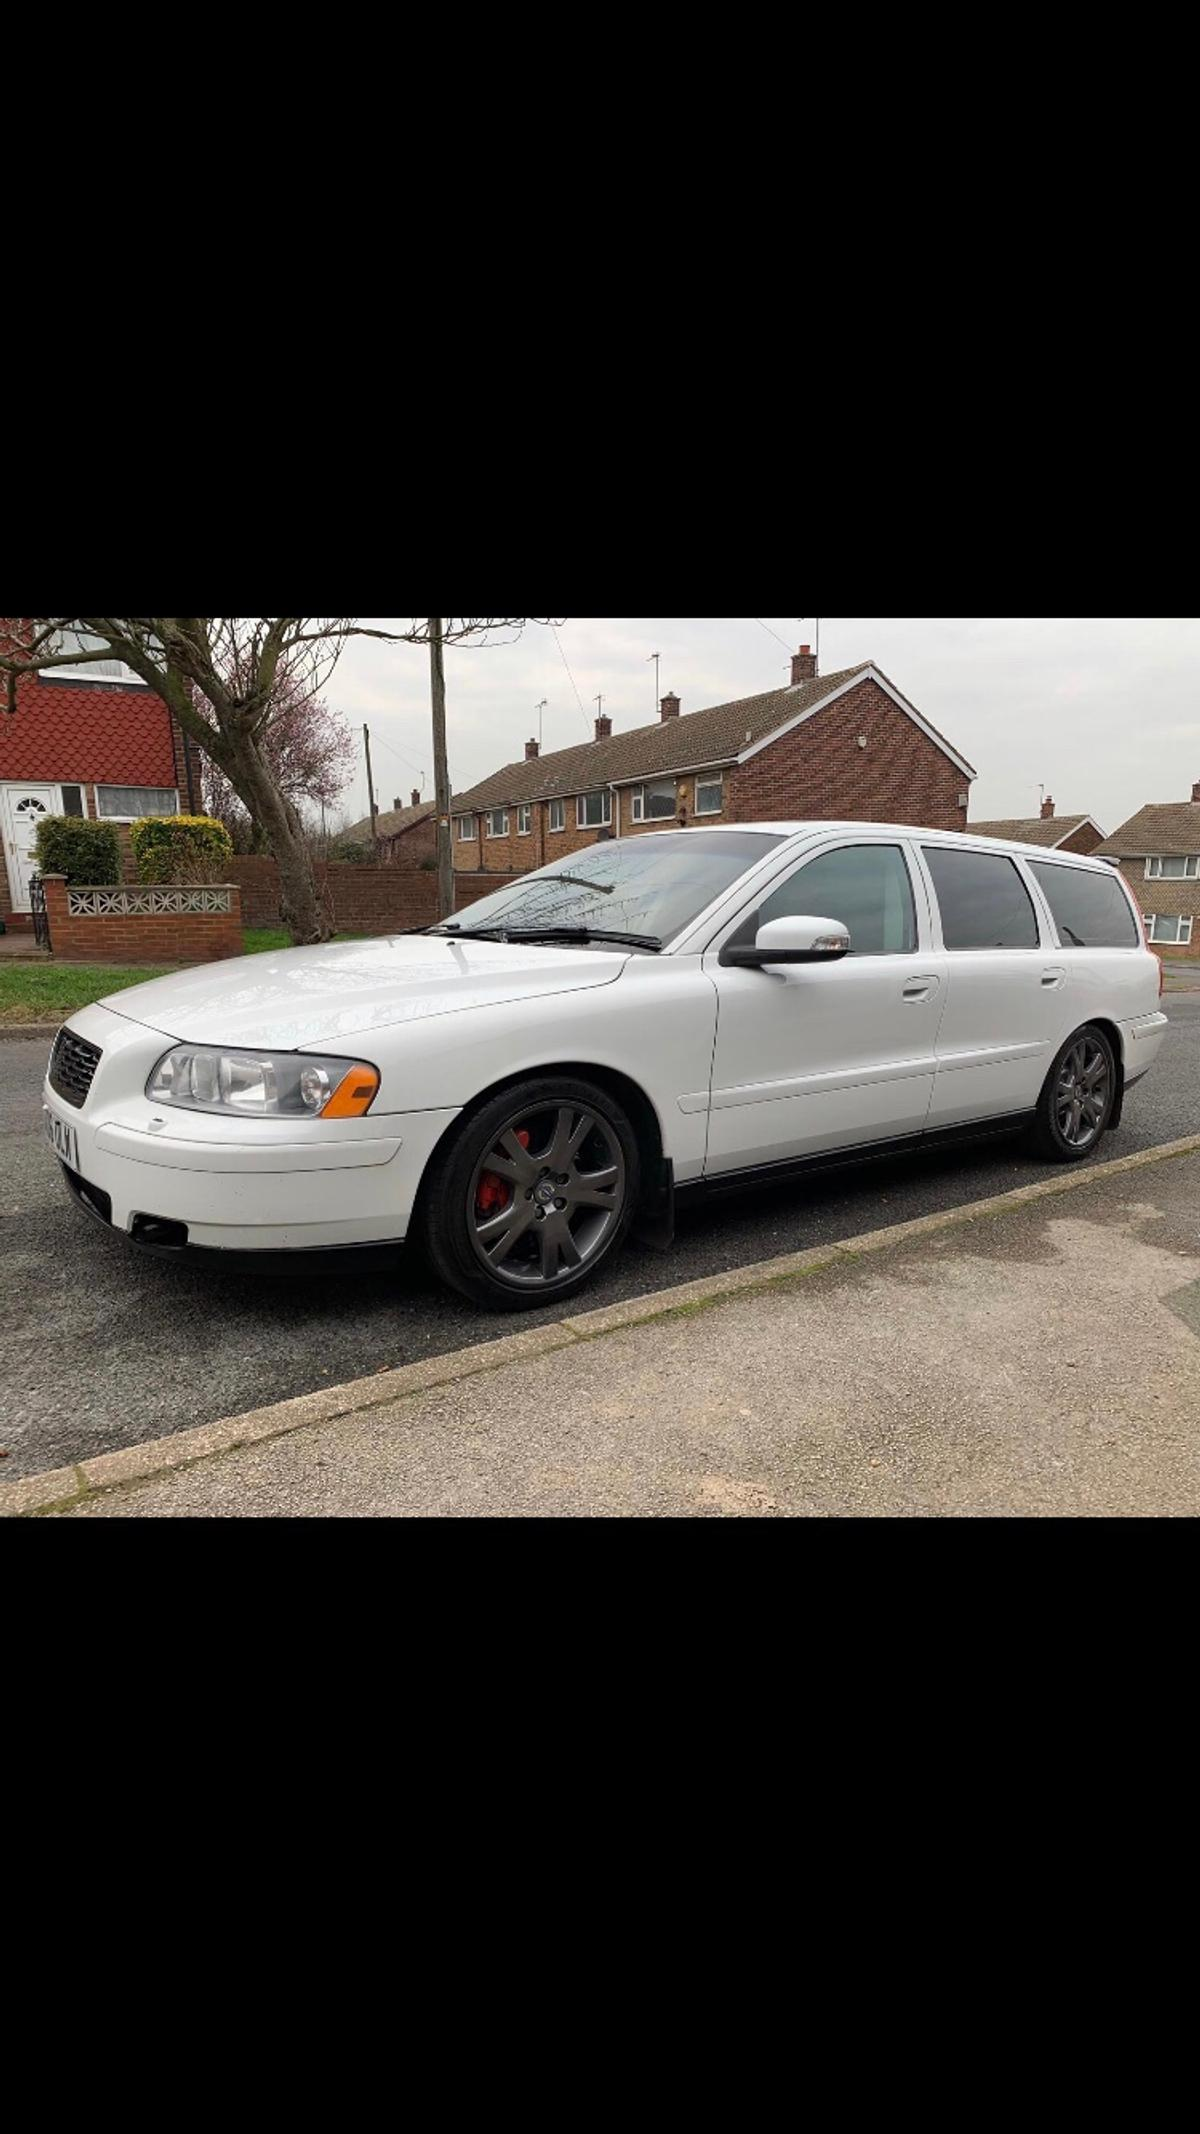 VOLVO V70 T5 330 BHP in M27 Salford for £1,750 00 for sale - Shpock